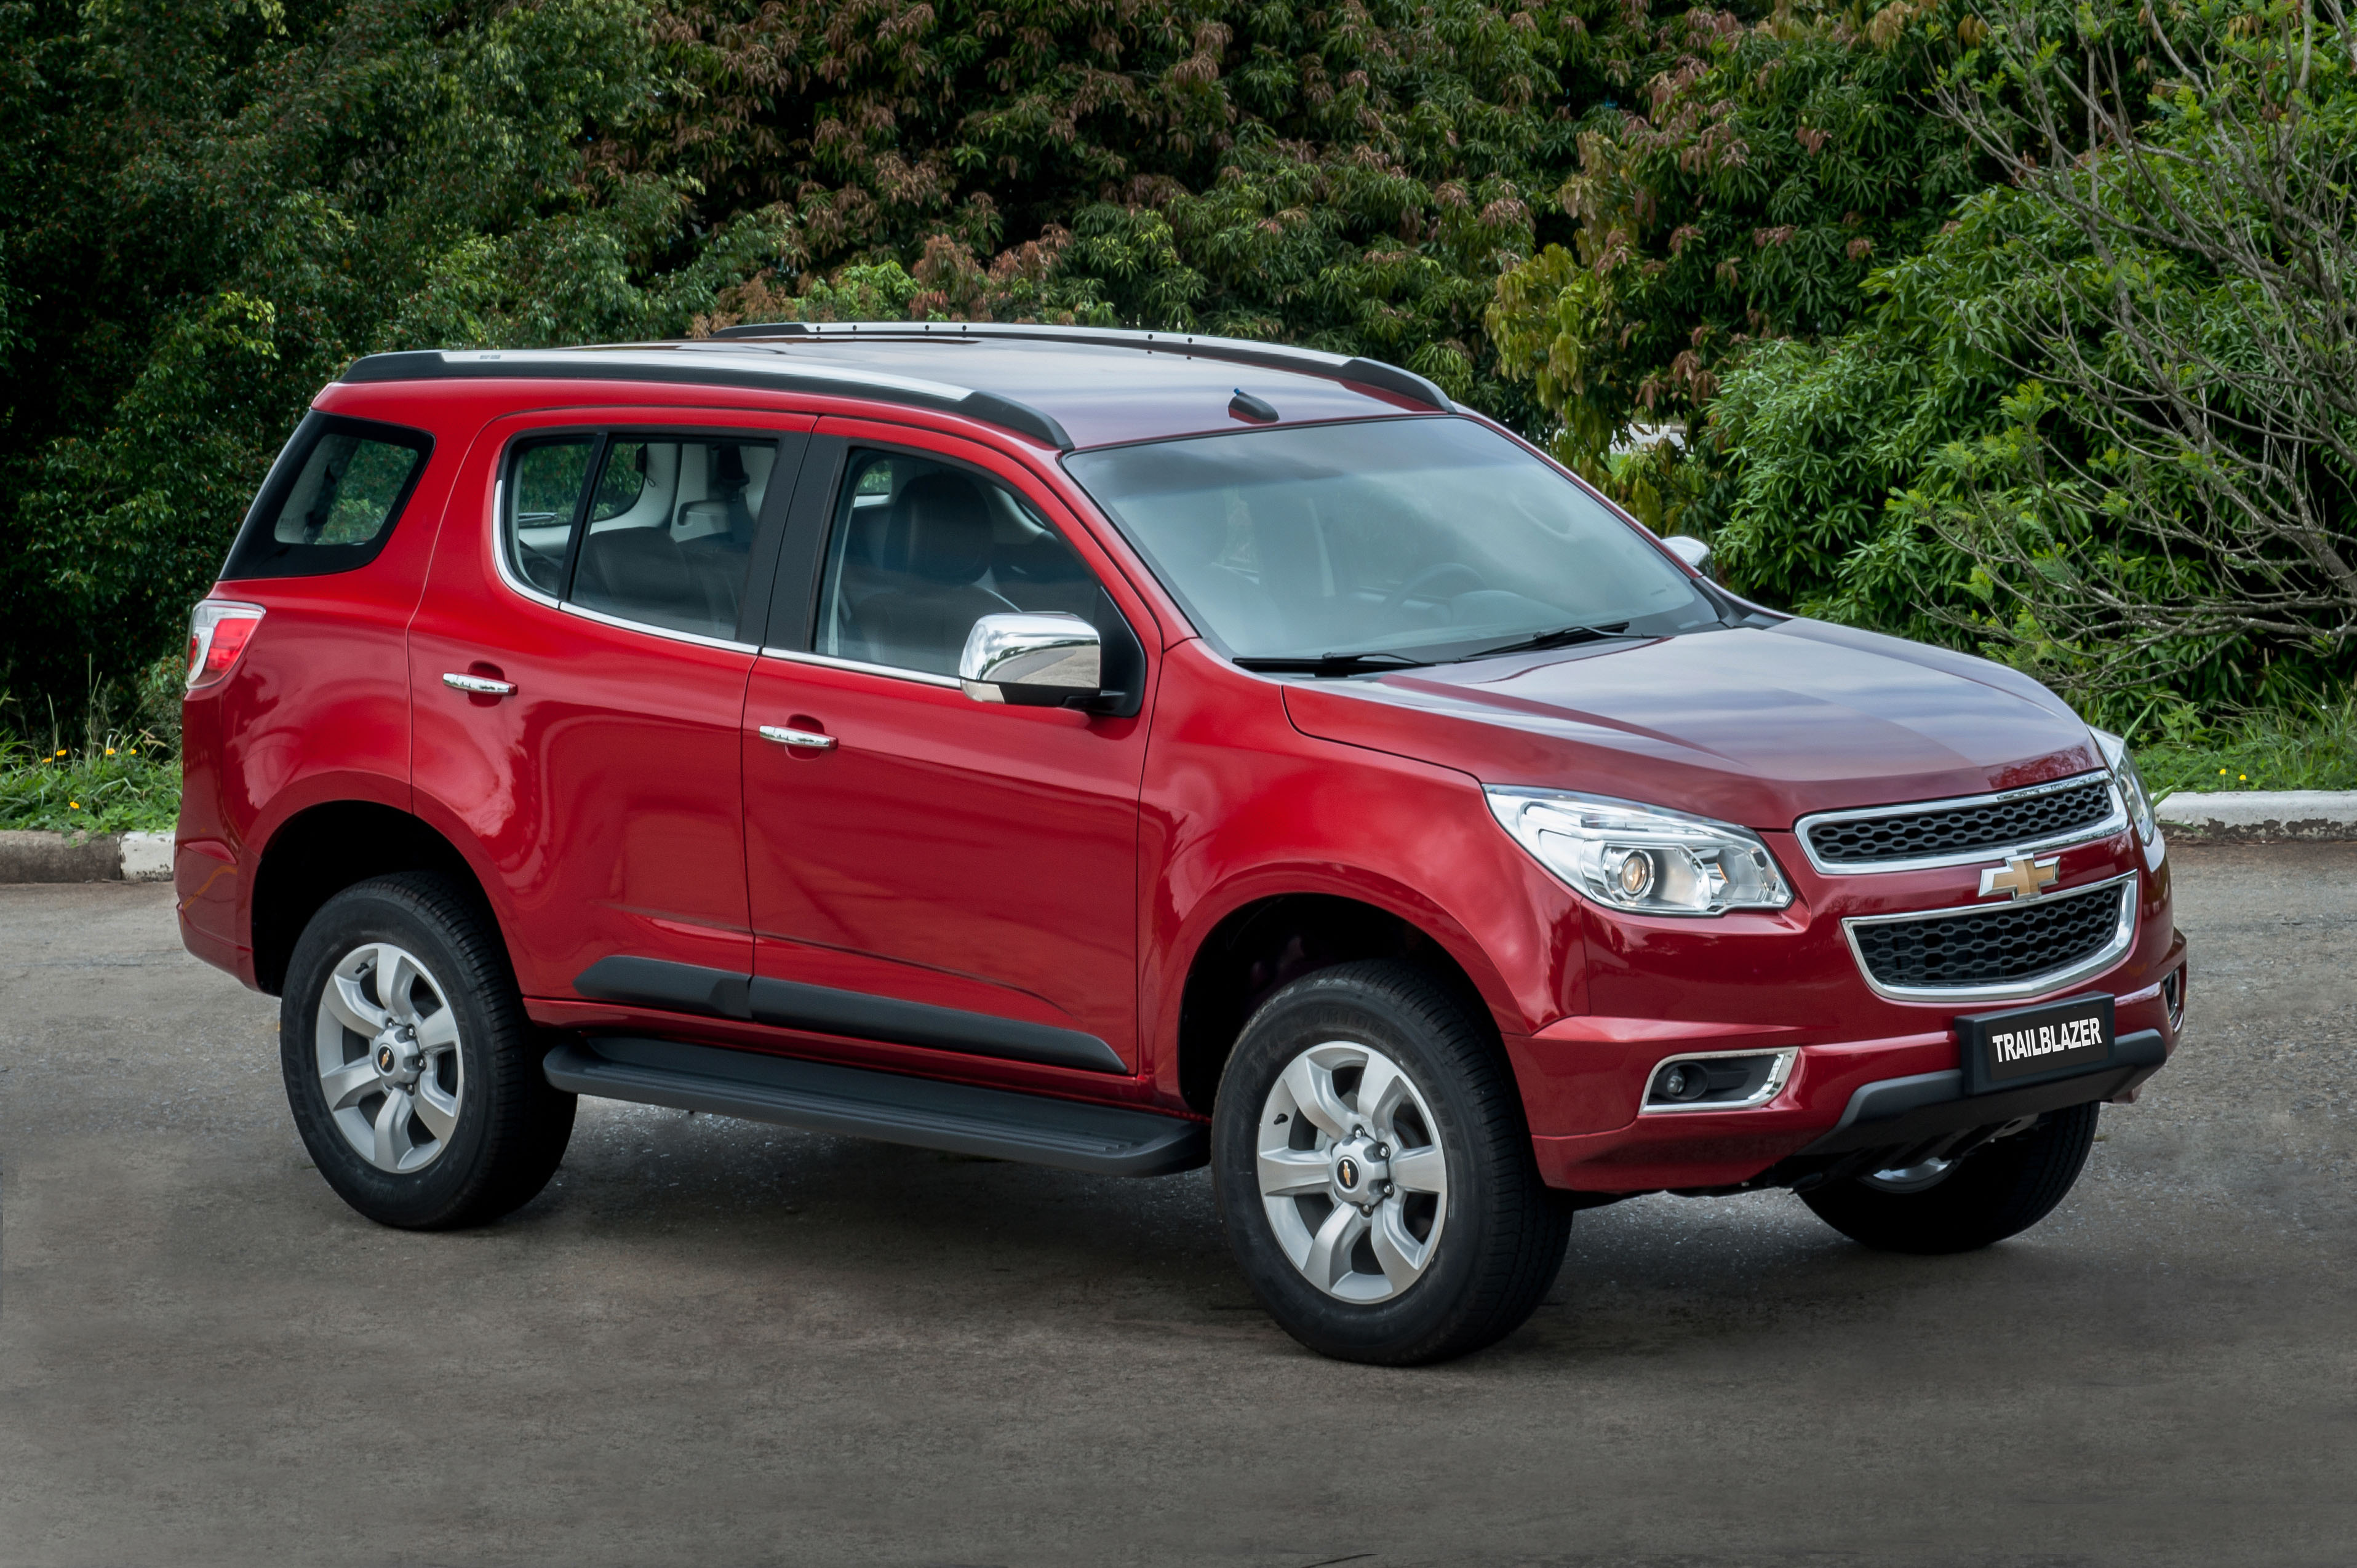 2016 Chevy Trailblazer >> Chevrolet Pressroom Middle East Trailblazer